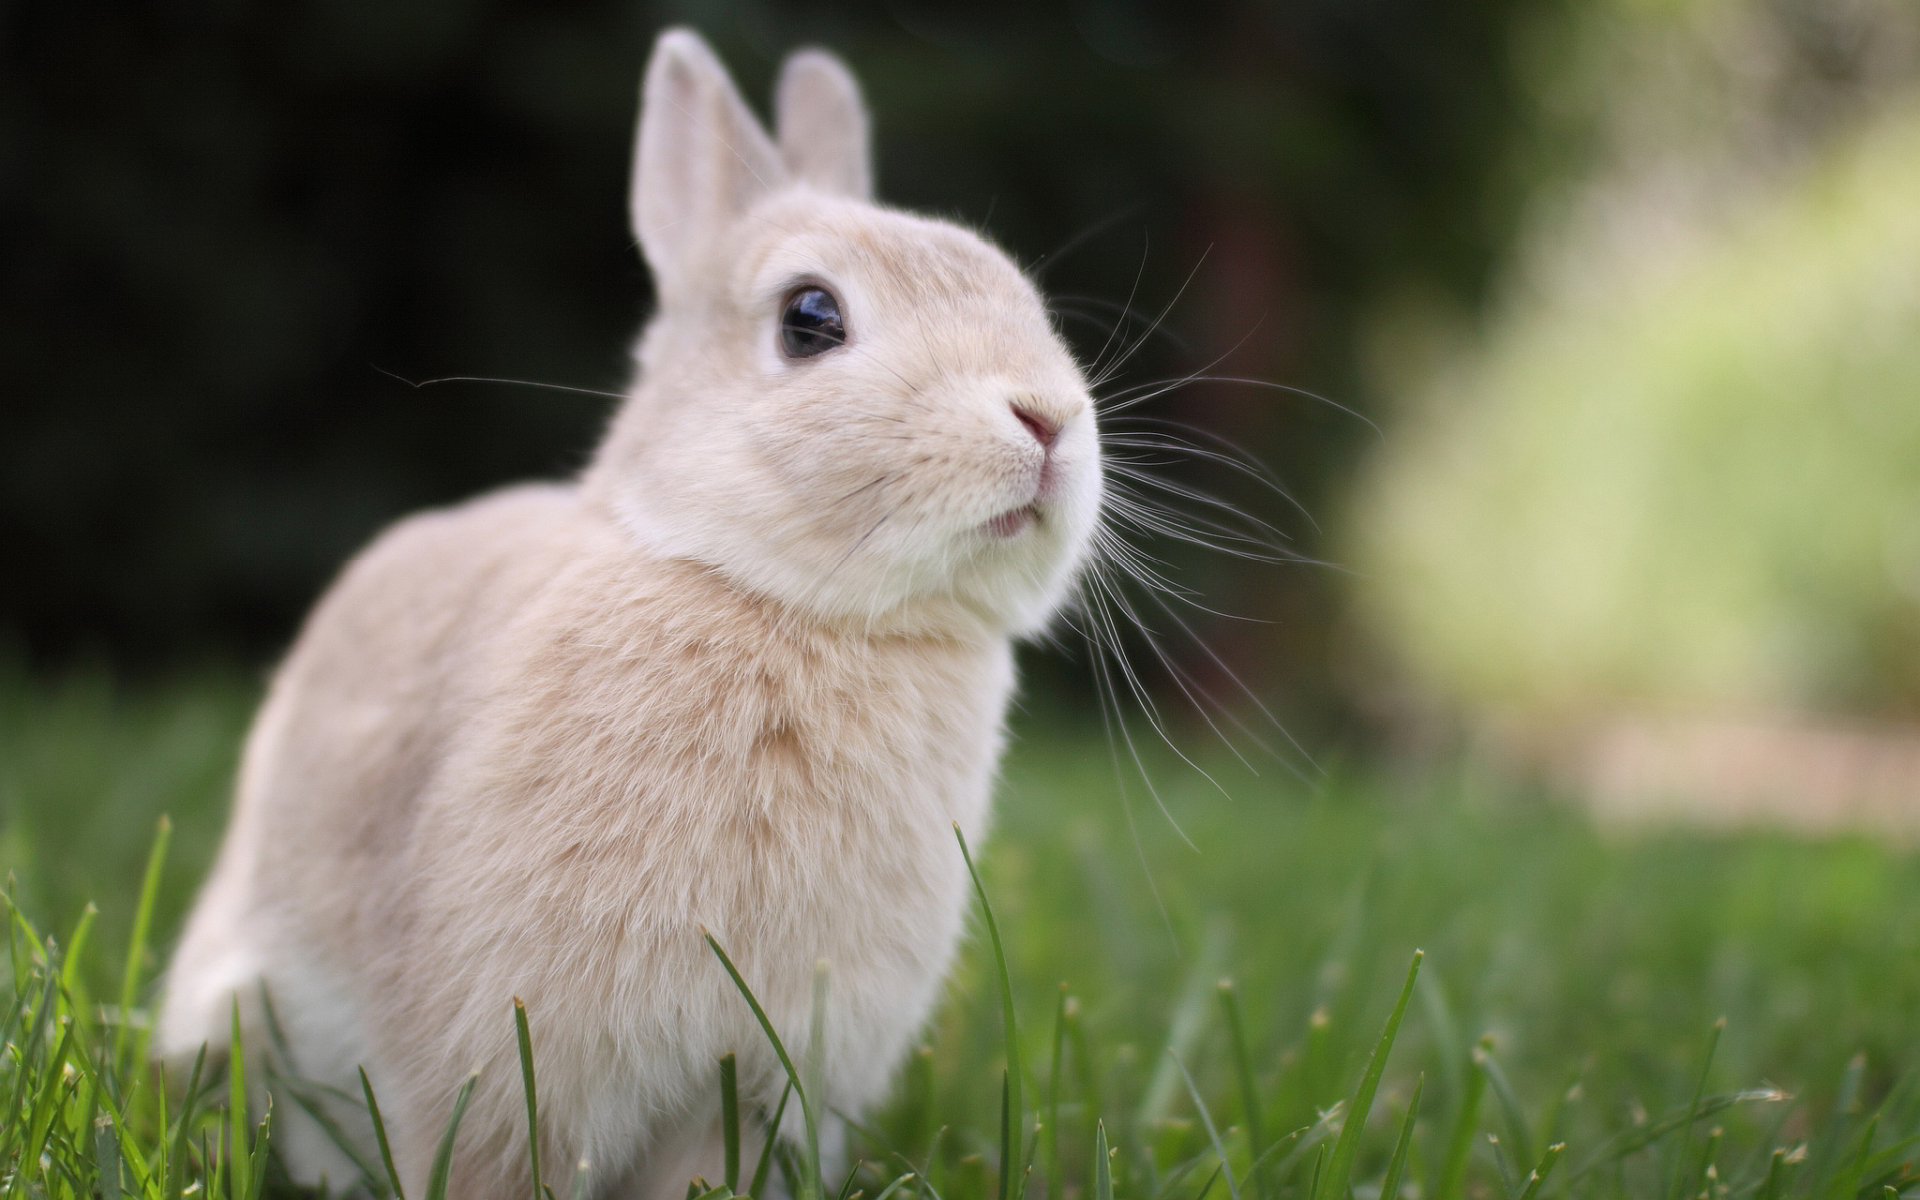 Cute White Rabbit Wallpapers For Desktop: Bunny Wallpapers High Quality